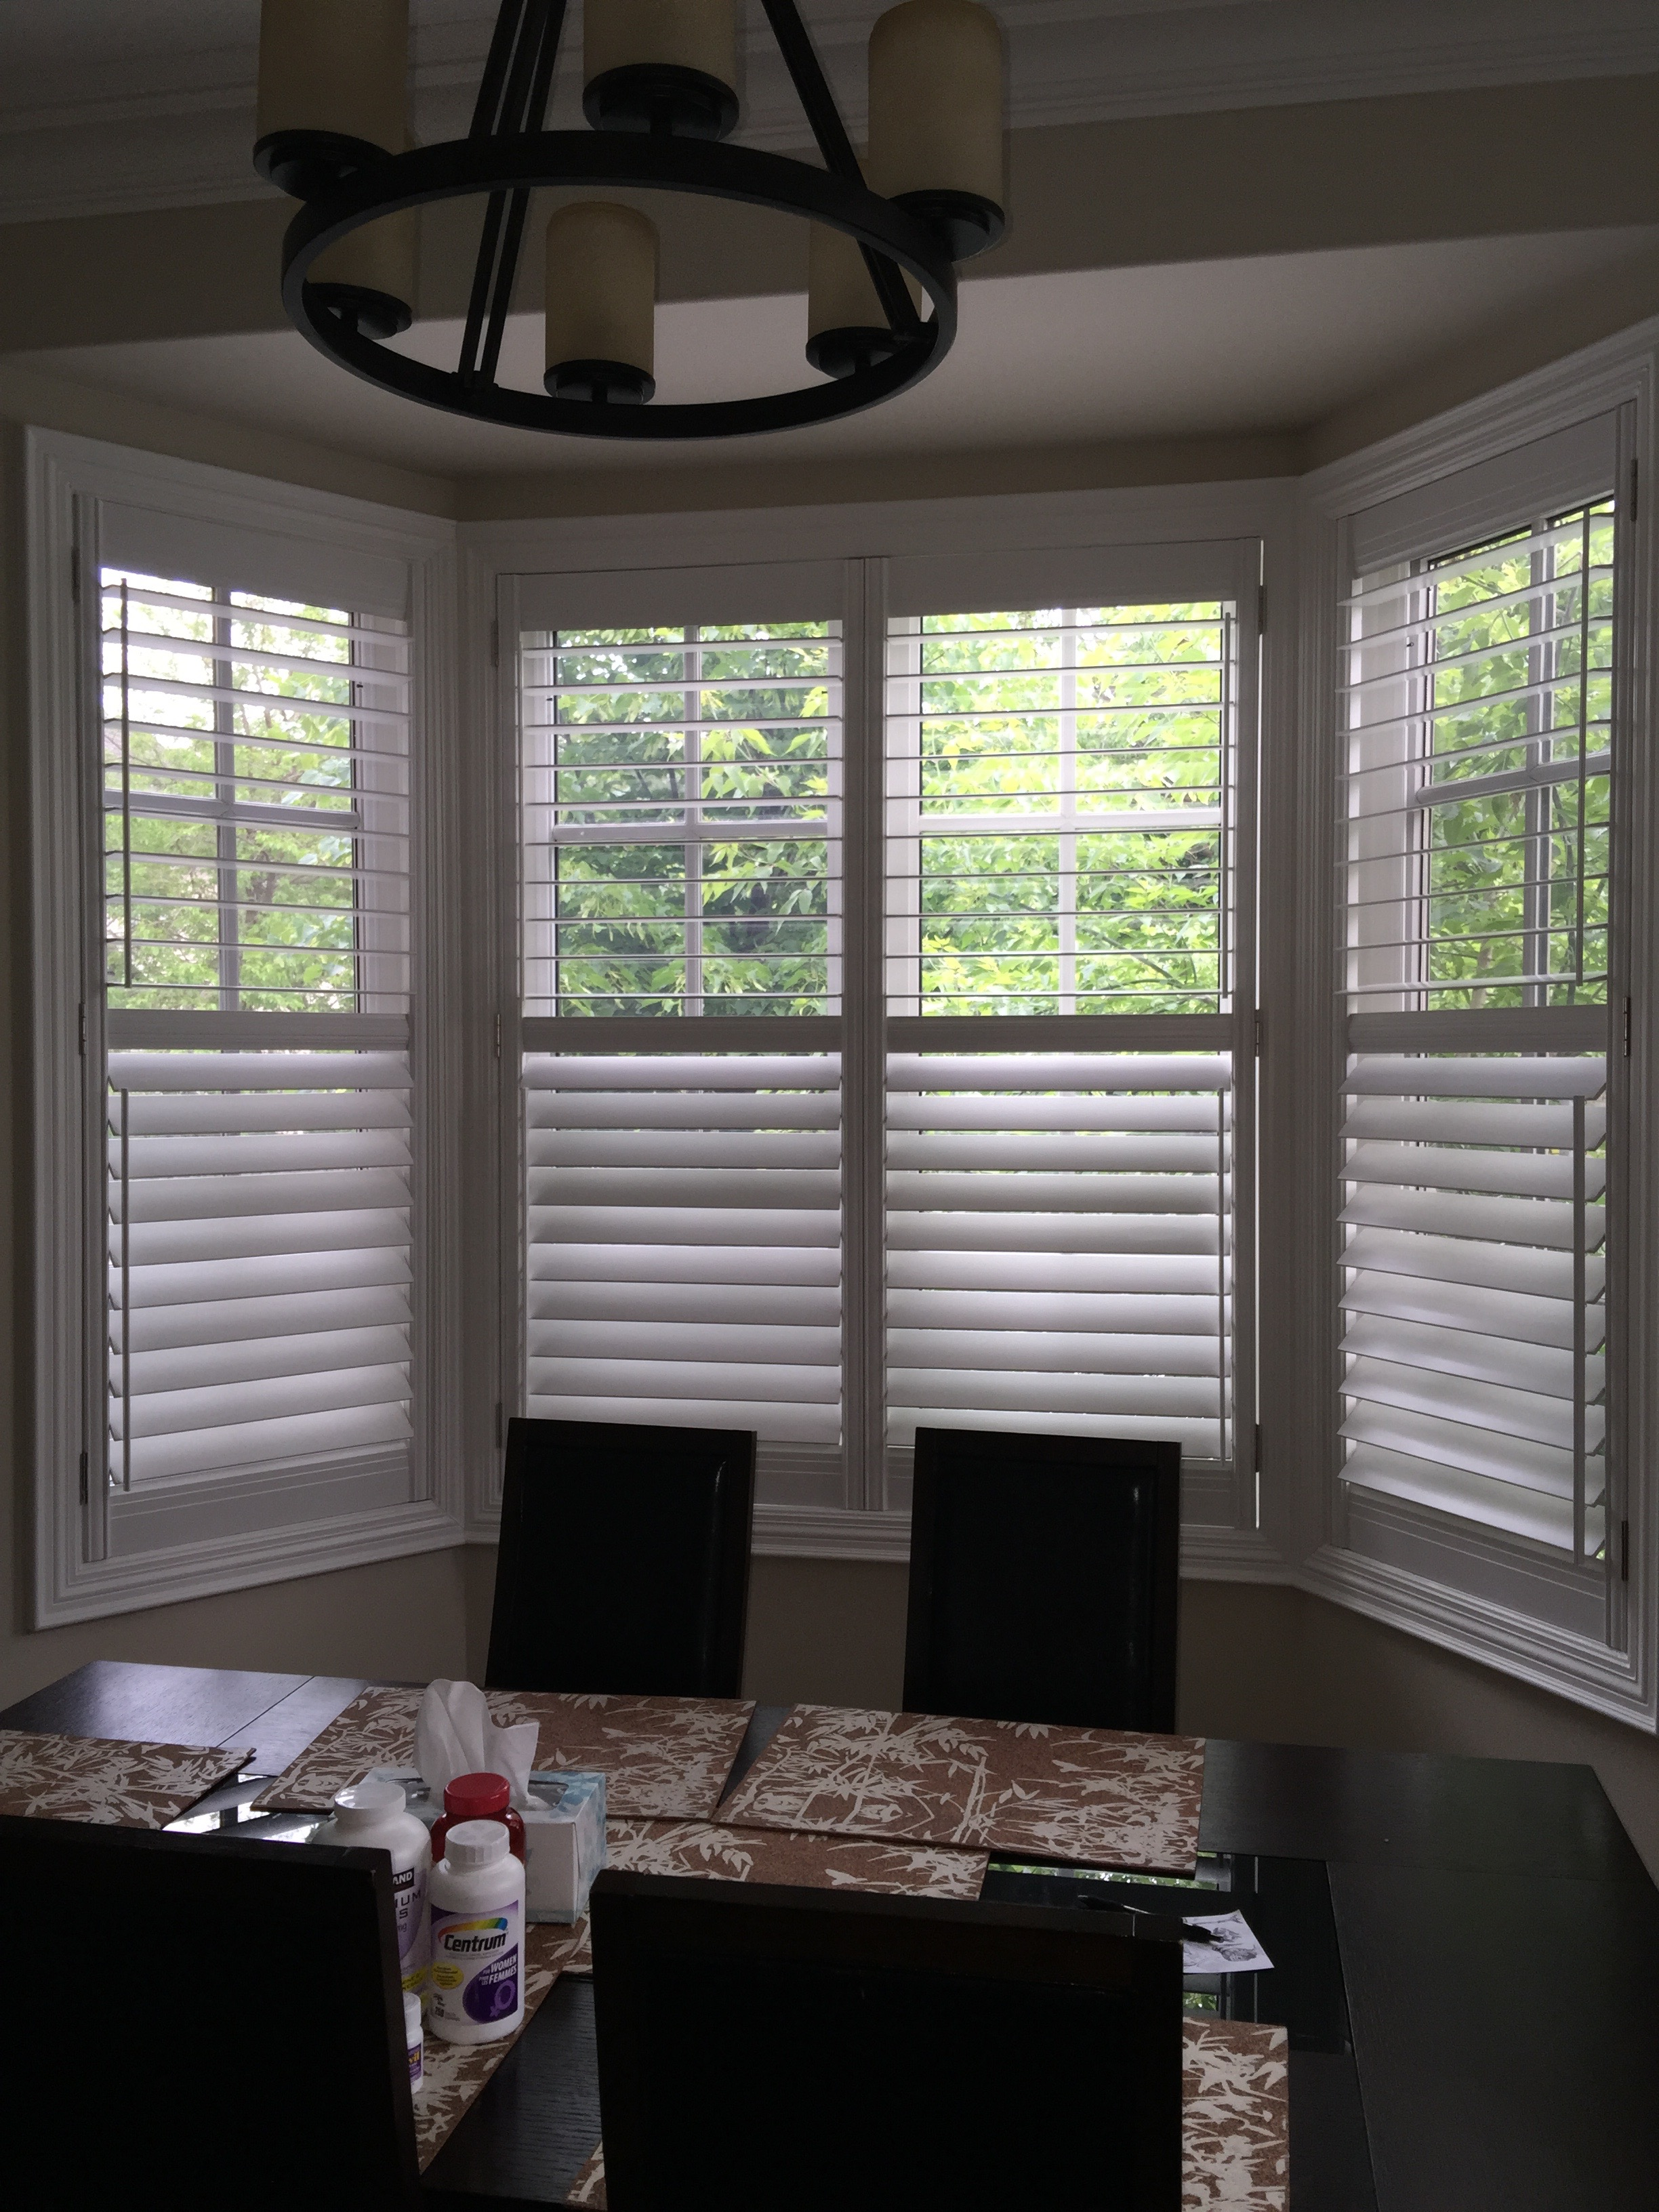 rustic exterior shutter shutters in for interior window view gallery treatment design ideas stylish